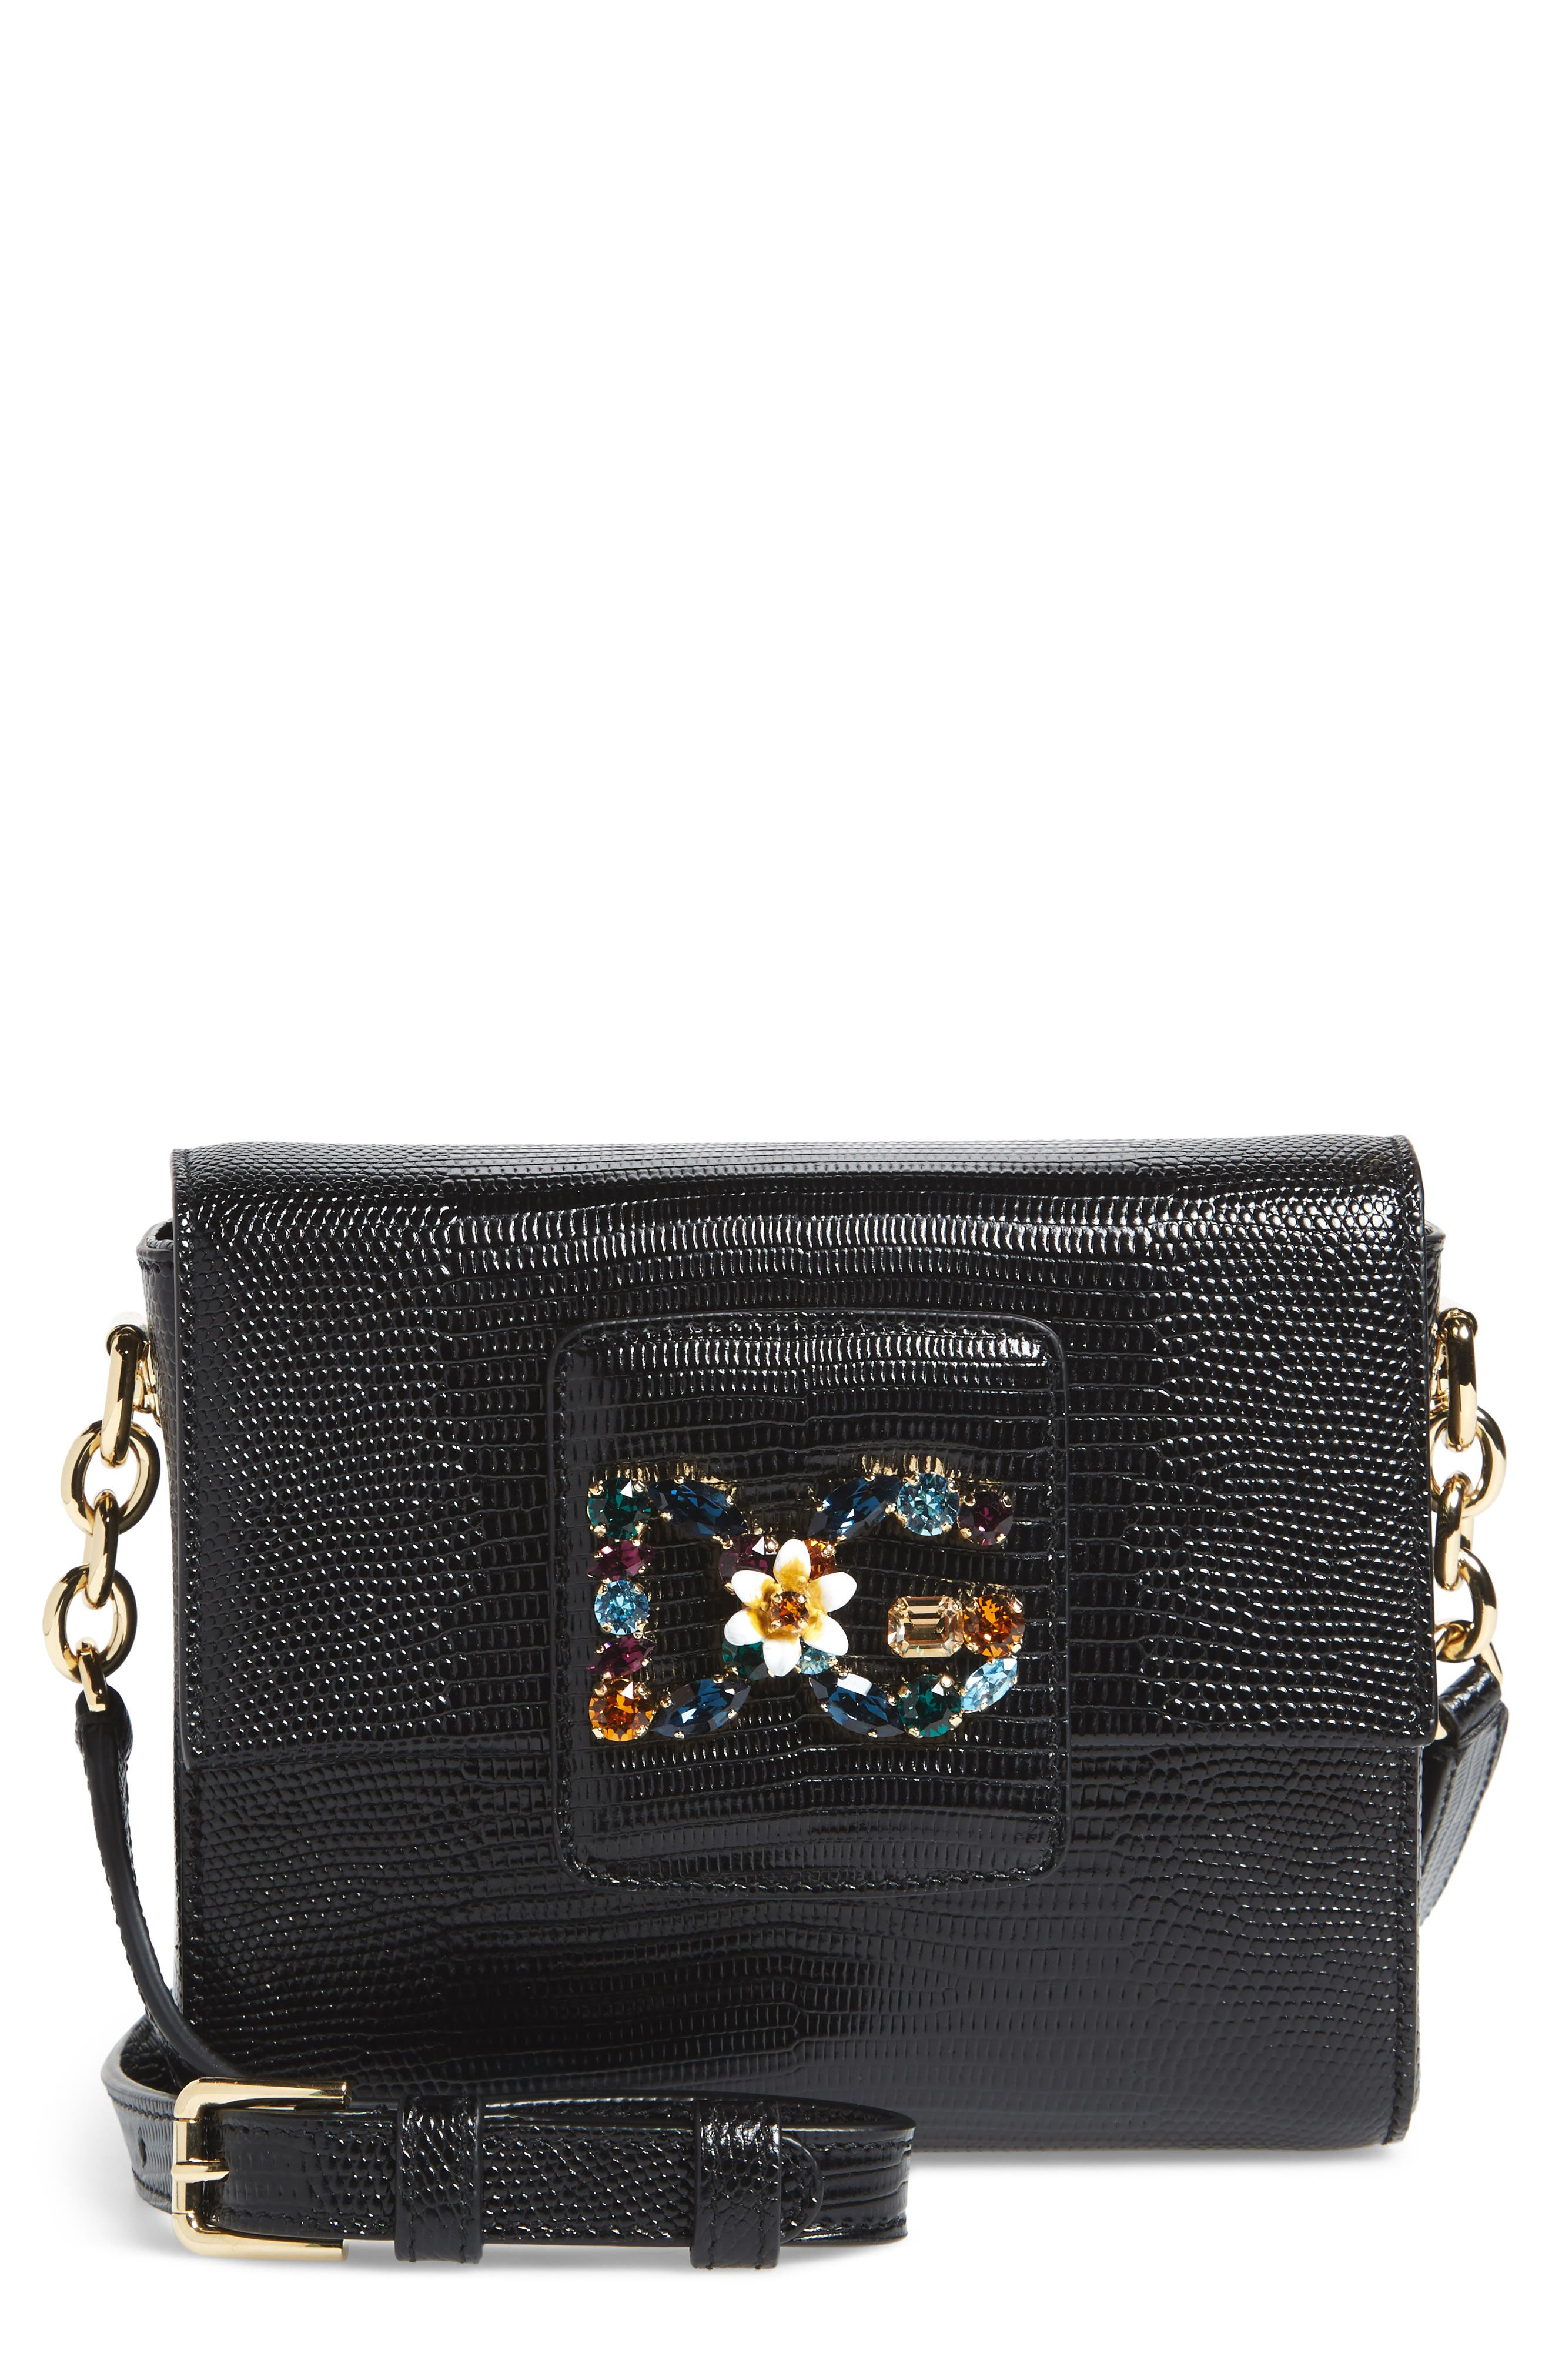 Main Image - Dolce&Gabbana Millennial Reptile Embossed Leather Crossbody Bag